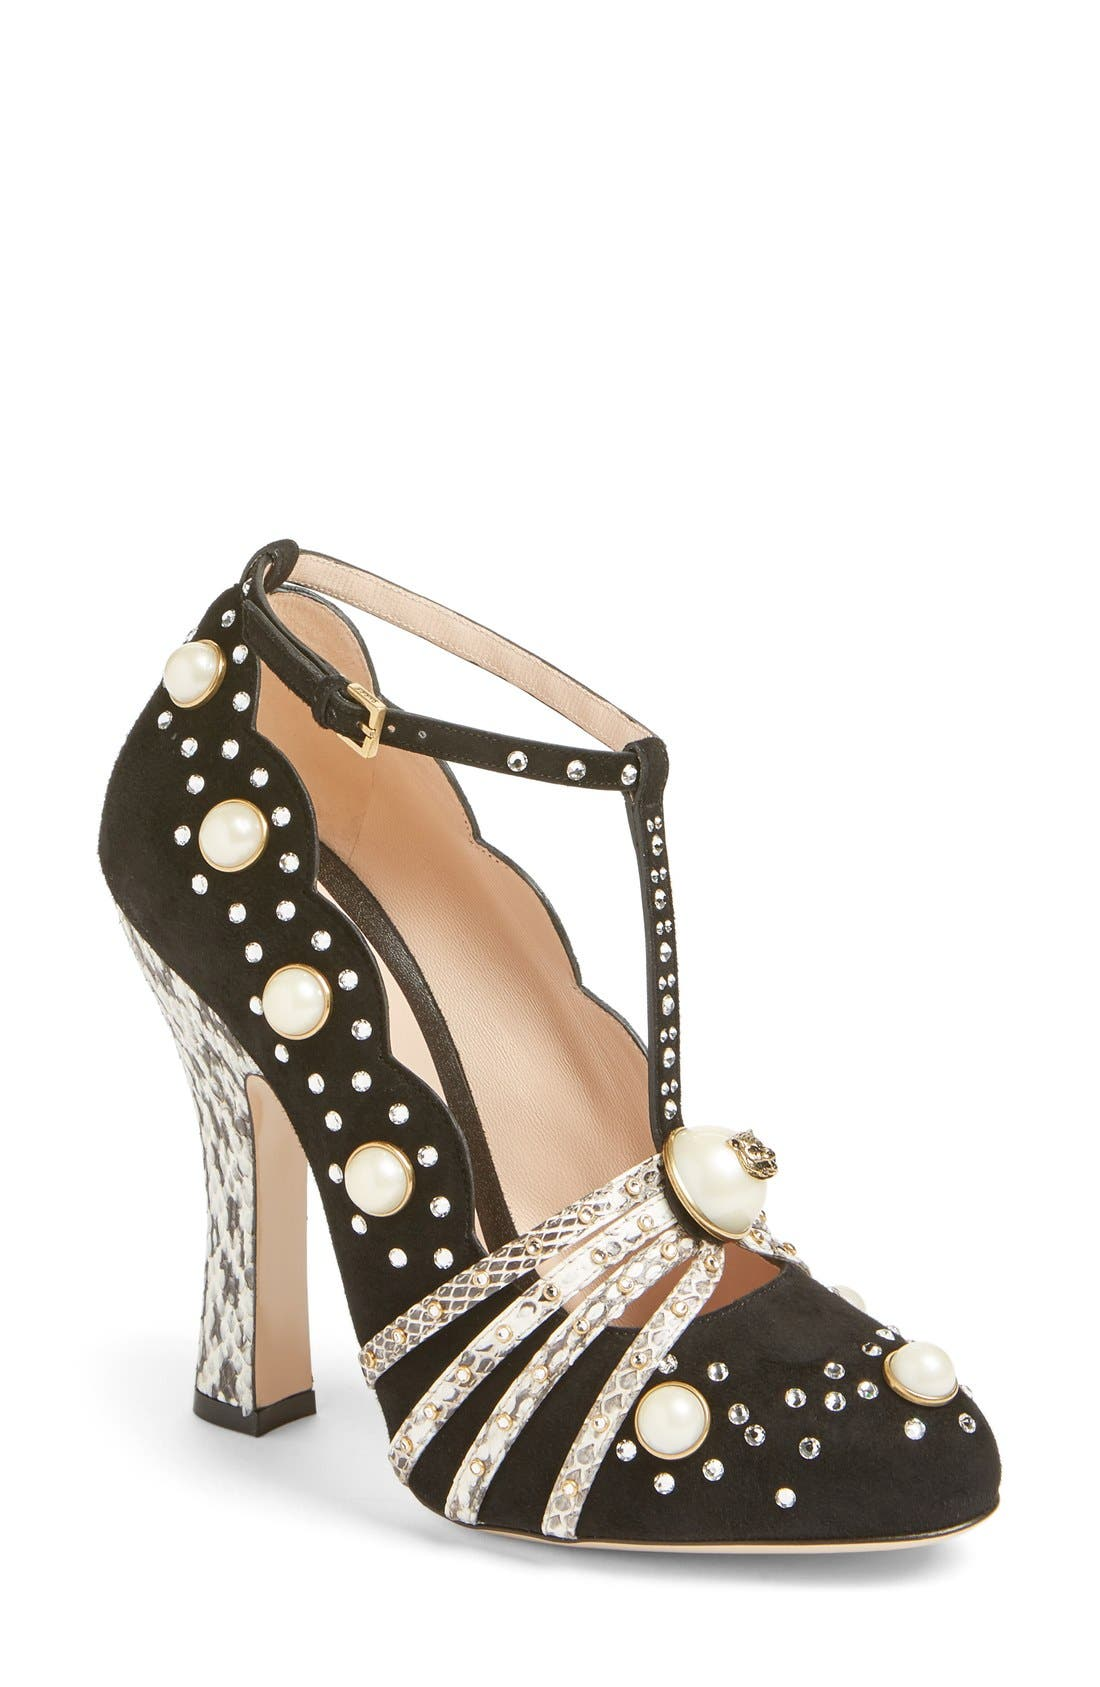 GUCCI Ofelia Pearly Crystal Embellished Pump